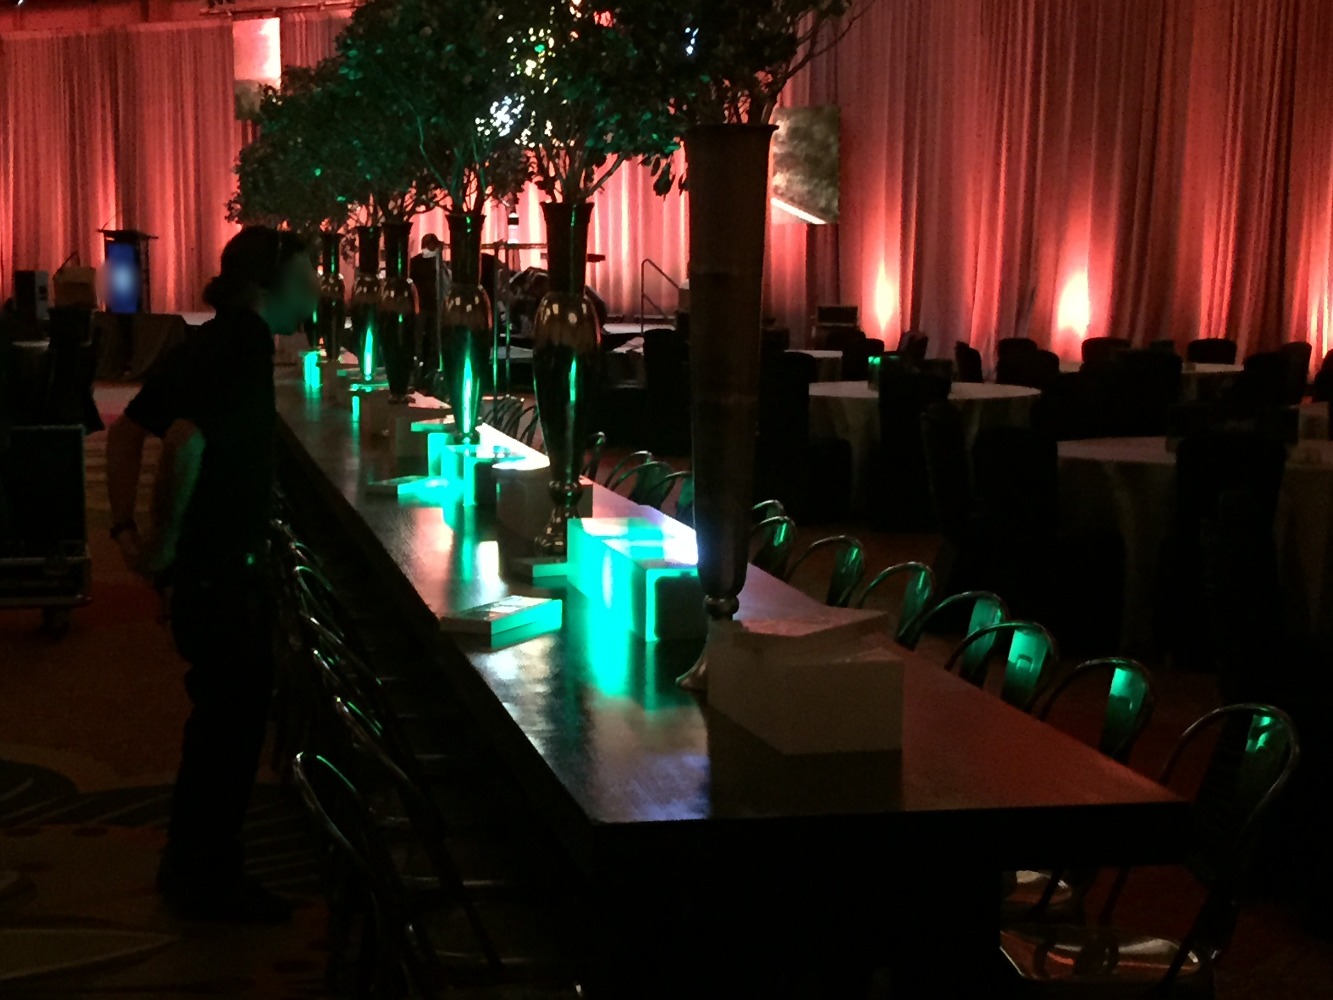 Light up your event!